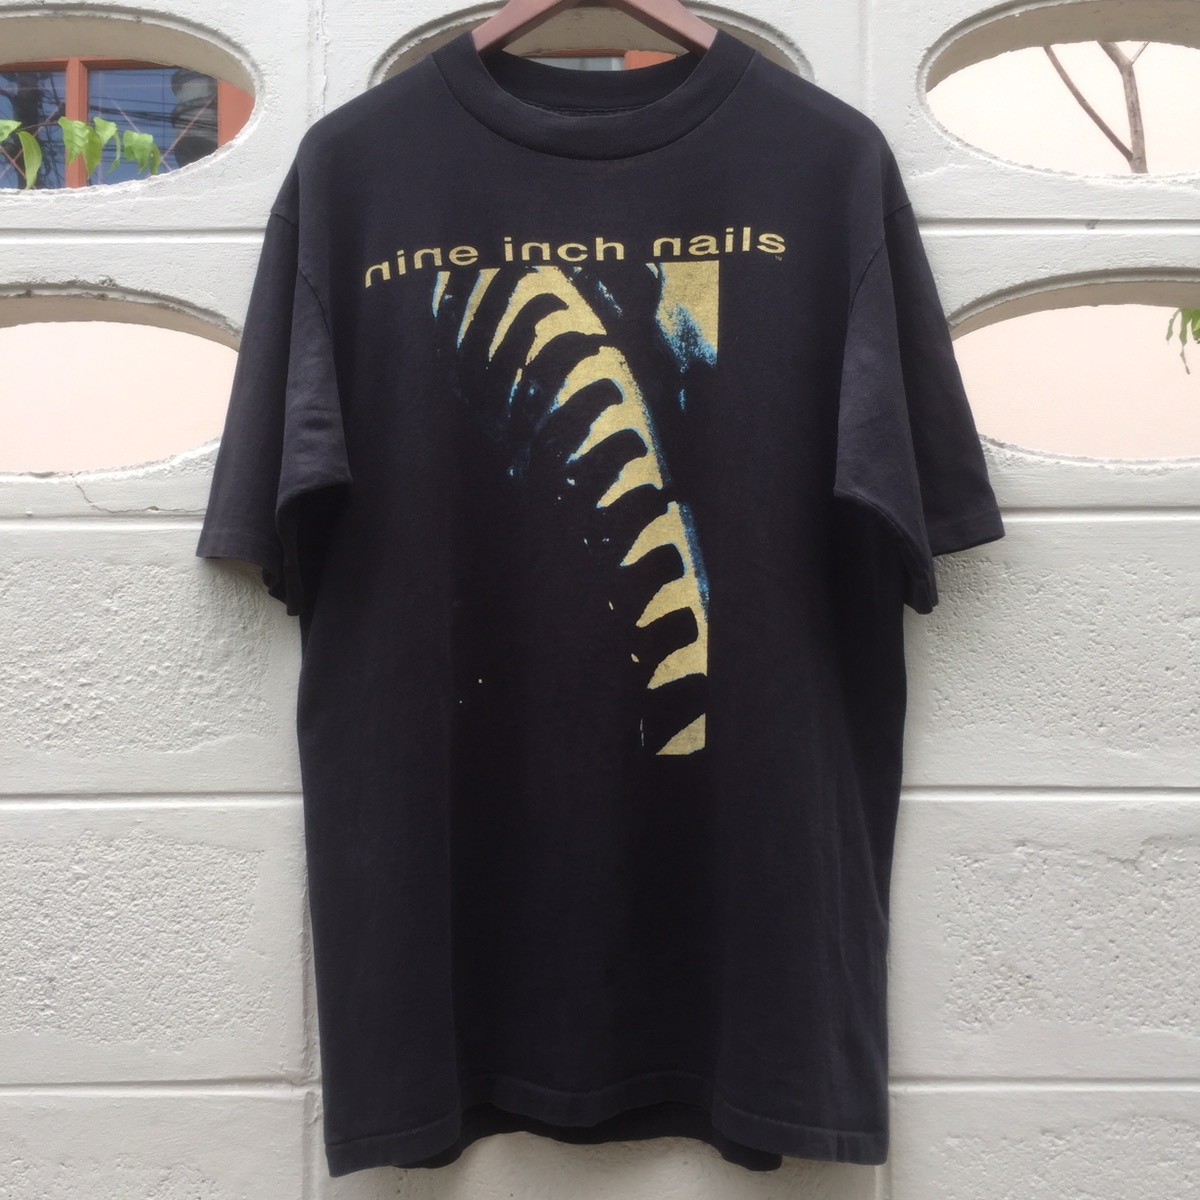 Vintage Nine Inch Nails Now I'm Nothing 90s Rock Black T-Shirt top good.@ RARE